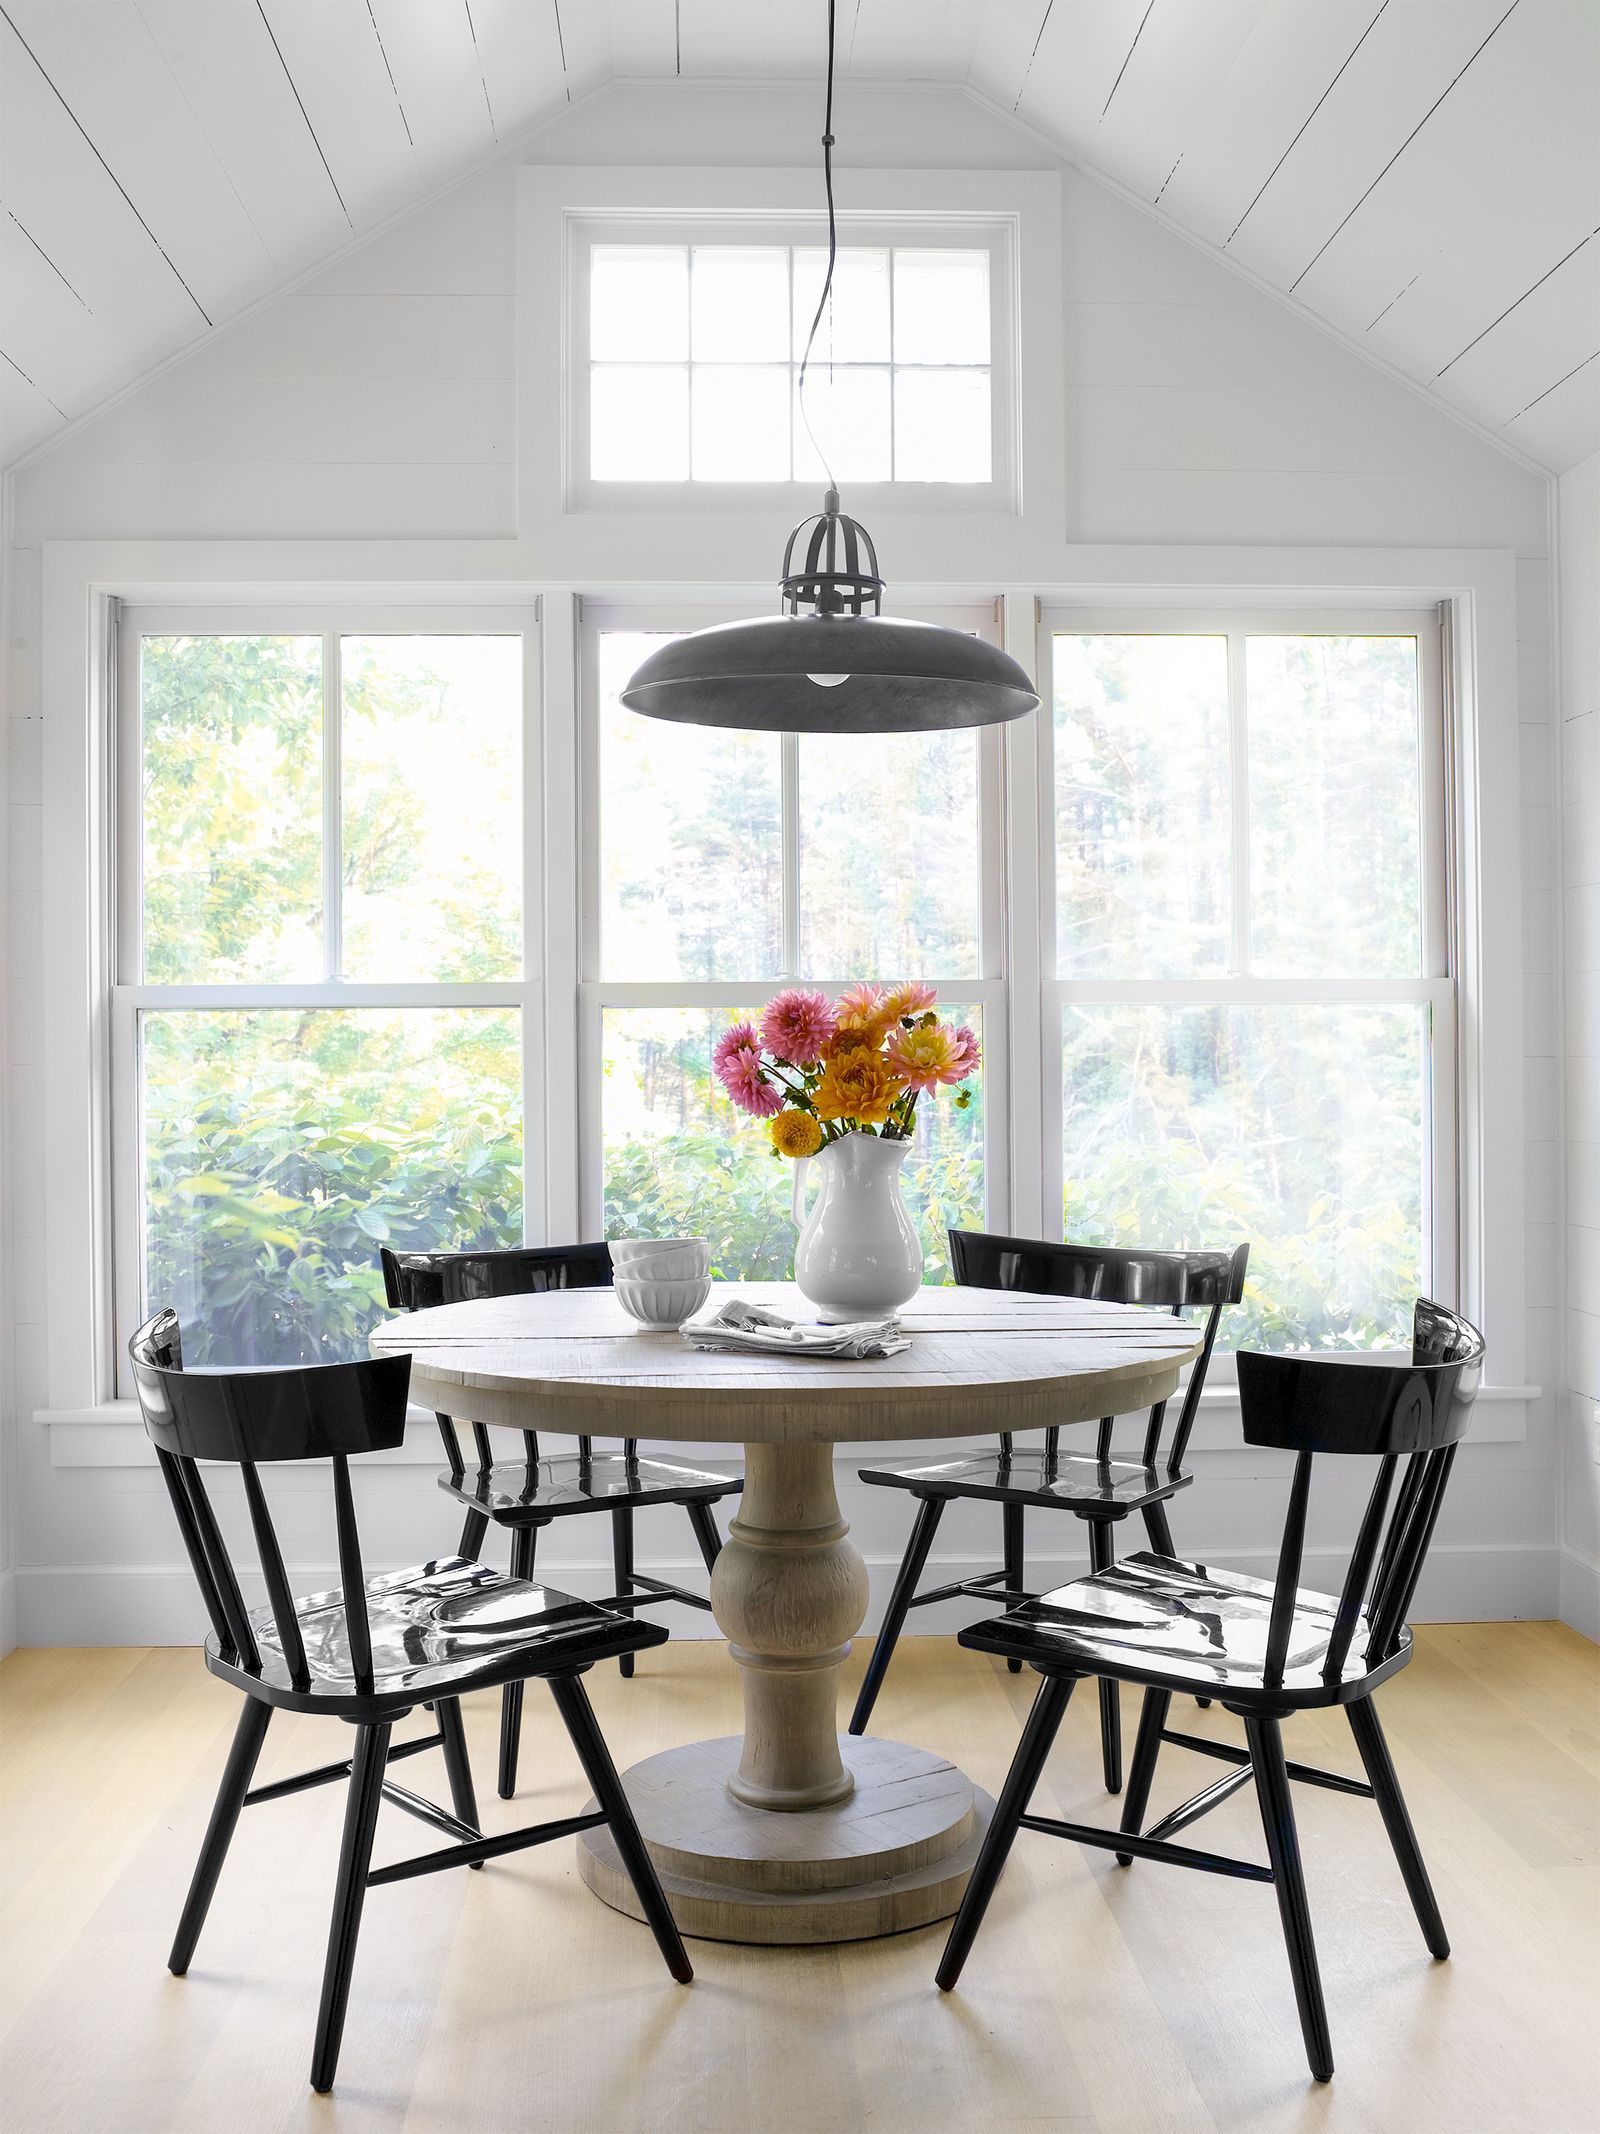 Cozy breakfast nook ideas that will fit any style size